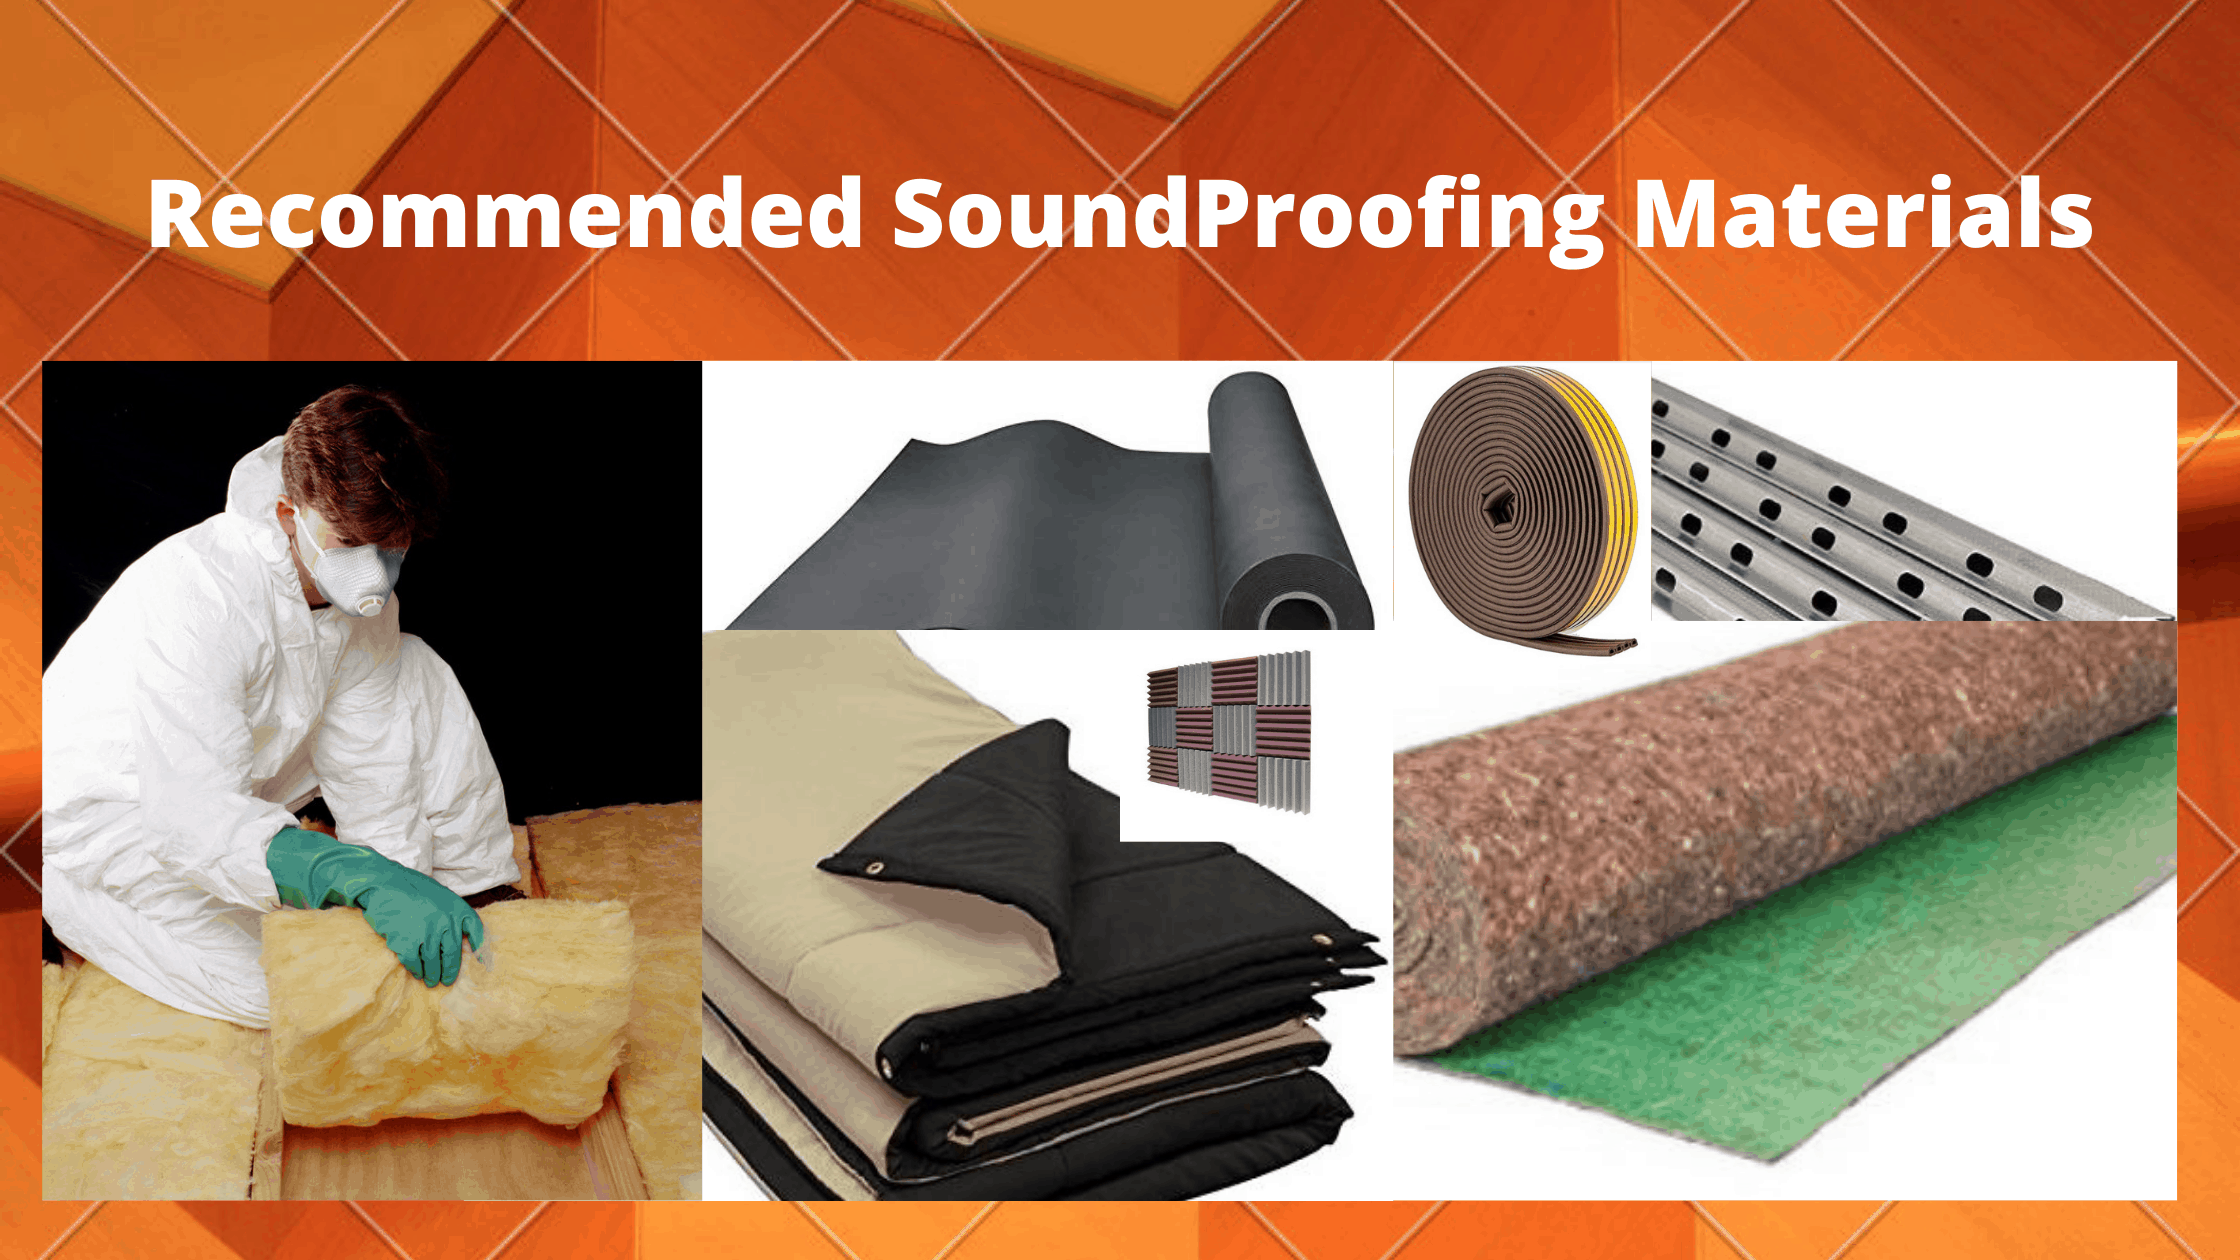 Best soundproofing materials